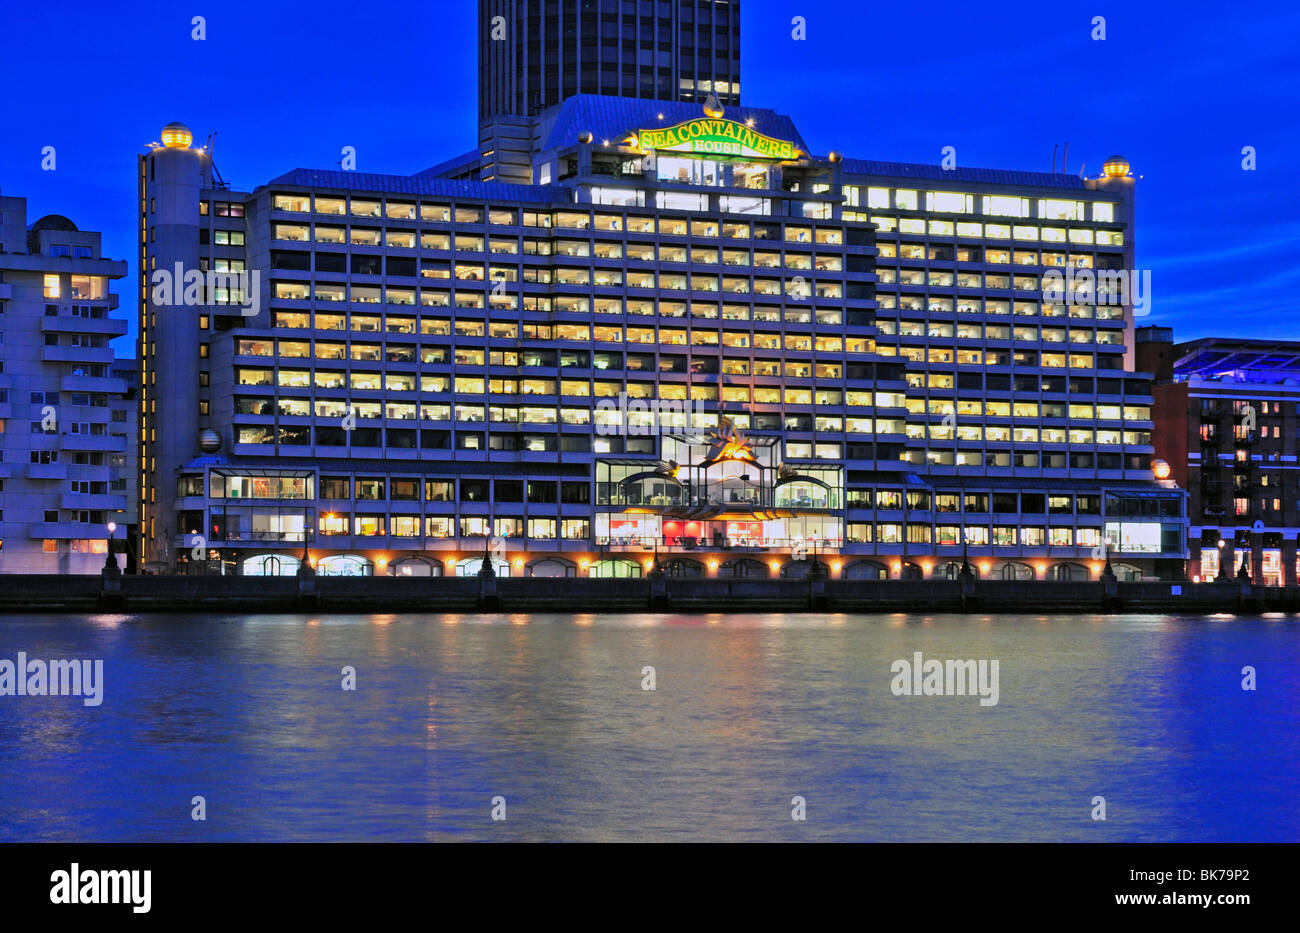 Sea Containers House Stock Photos & Sea Containers House Stock ...